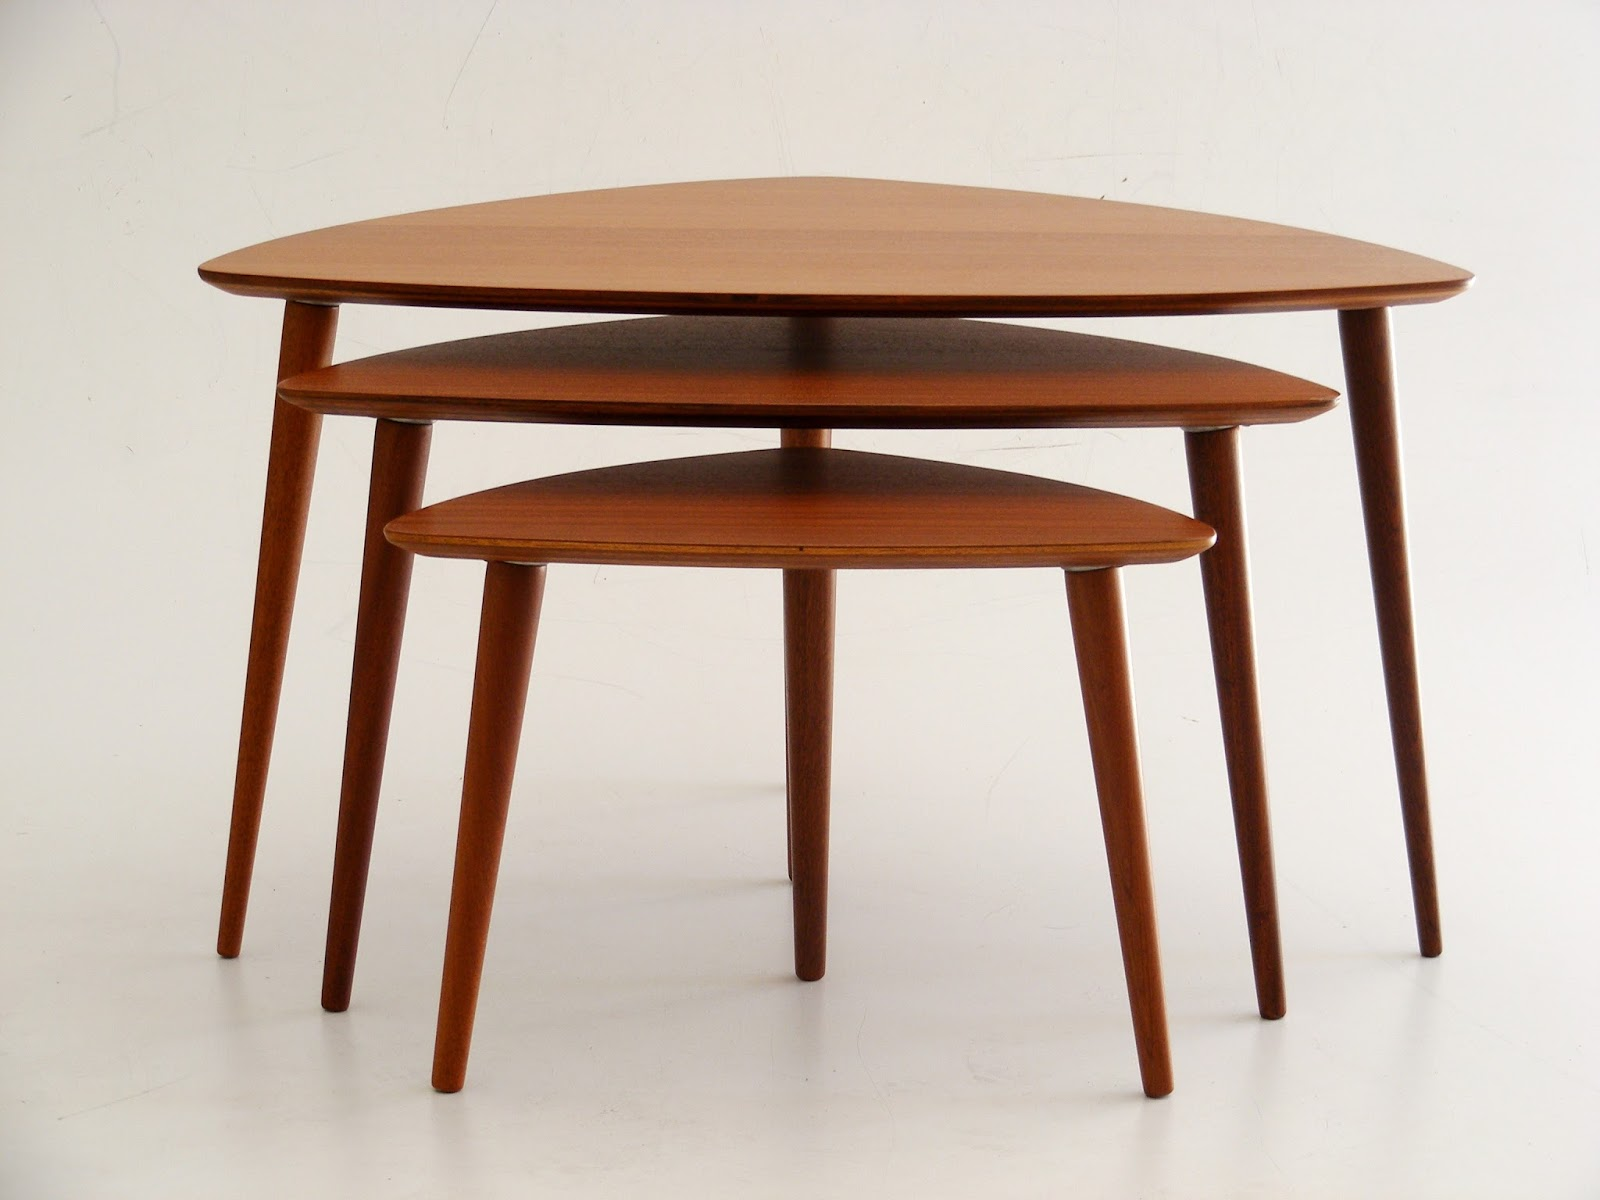 VAMP FURNITURE: A mid-century nest of 3 tables_16 April 2018